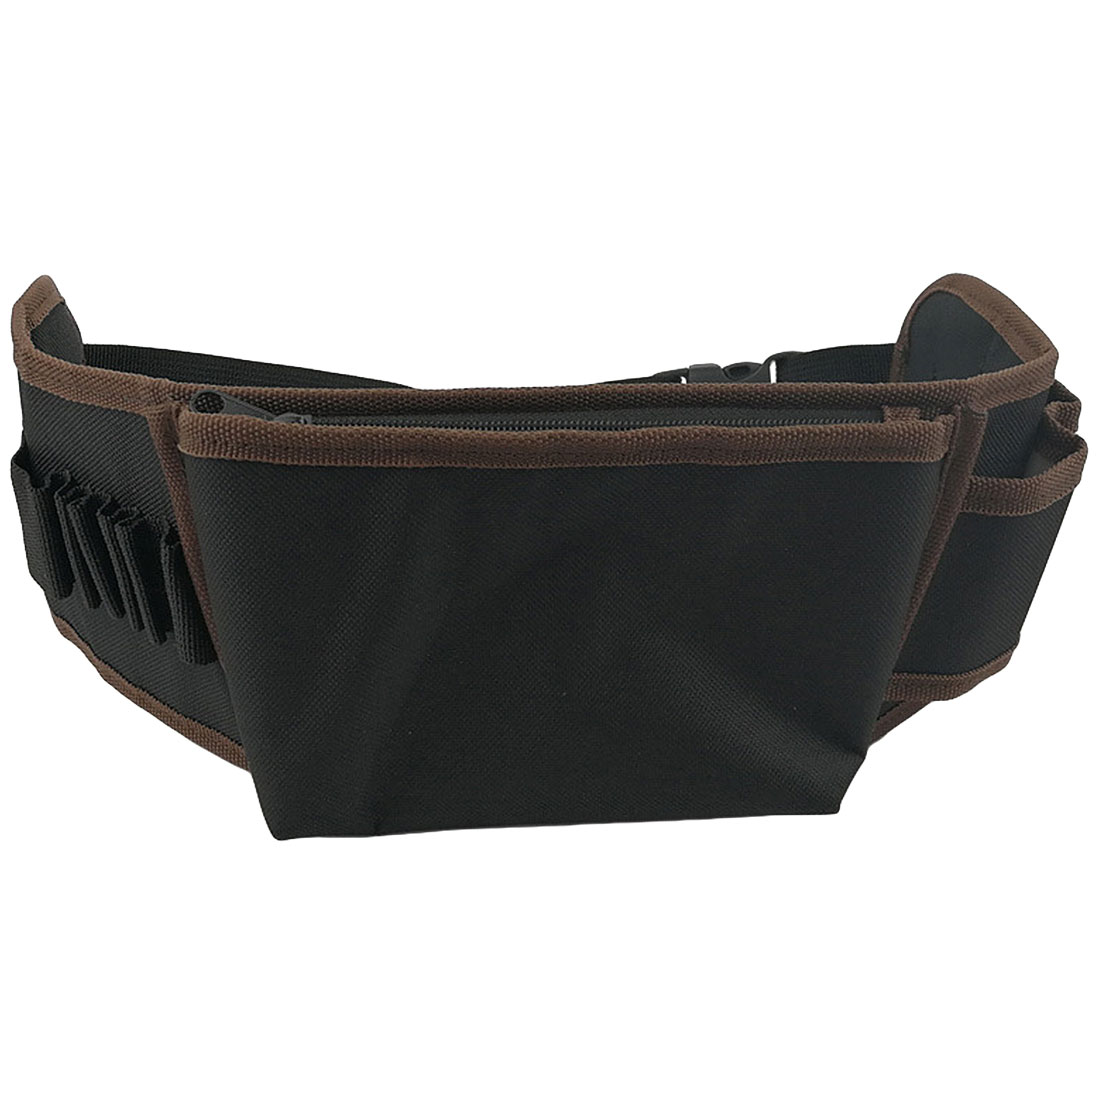 1pcs Waist Bag Tool Portable Hardware Mechanic Canvas Bag Electrician Multifunction Pouch Holder Belt Packs Work Tool Kit